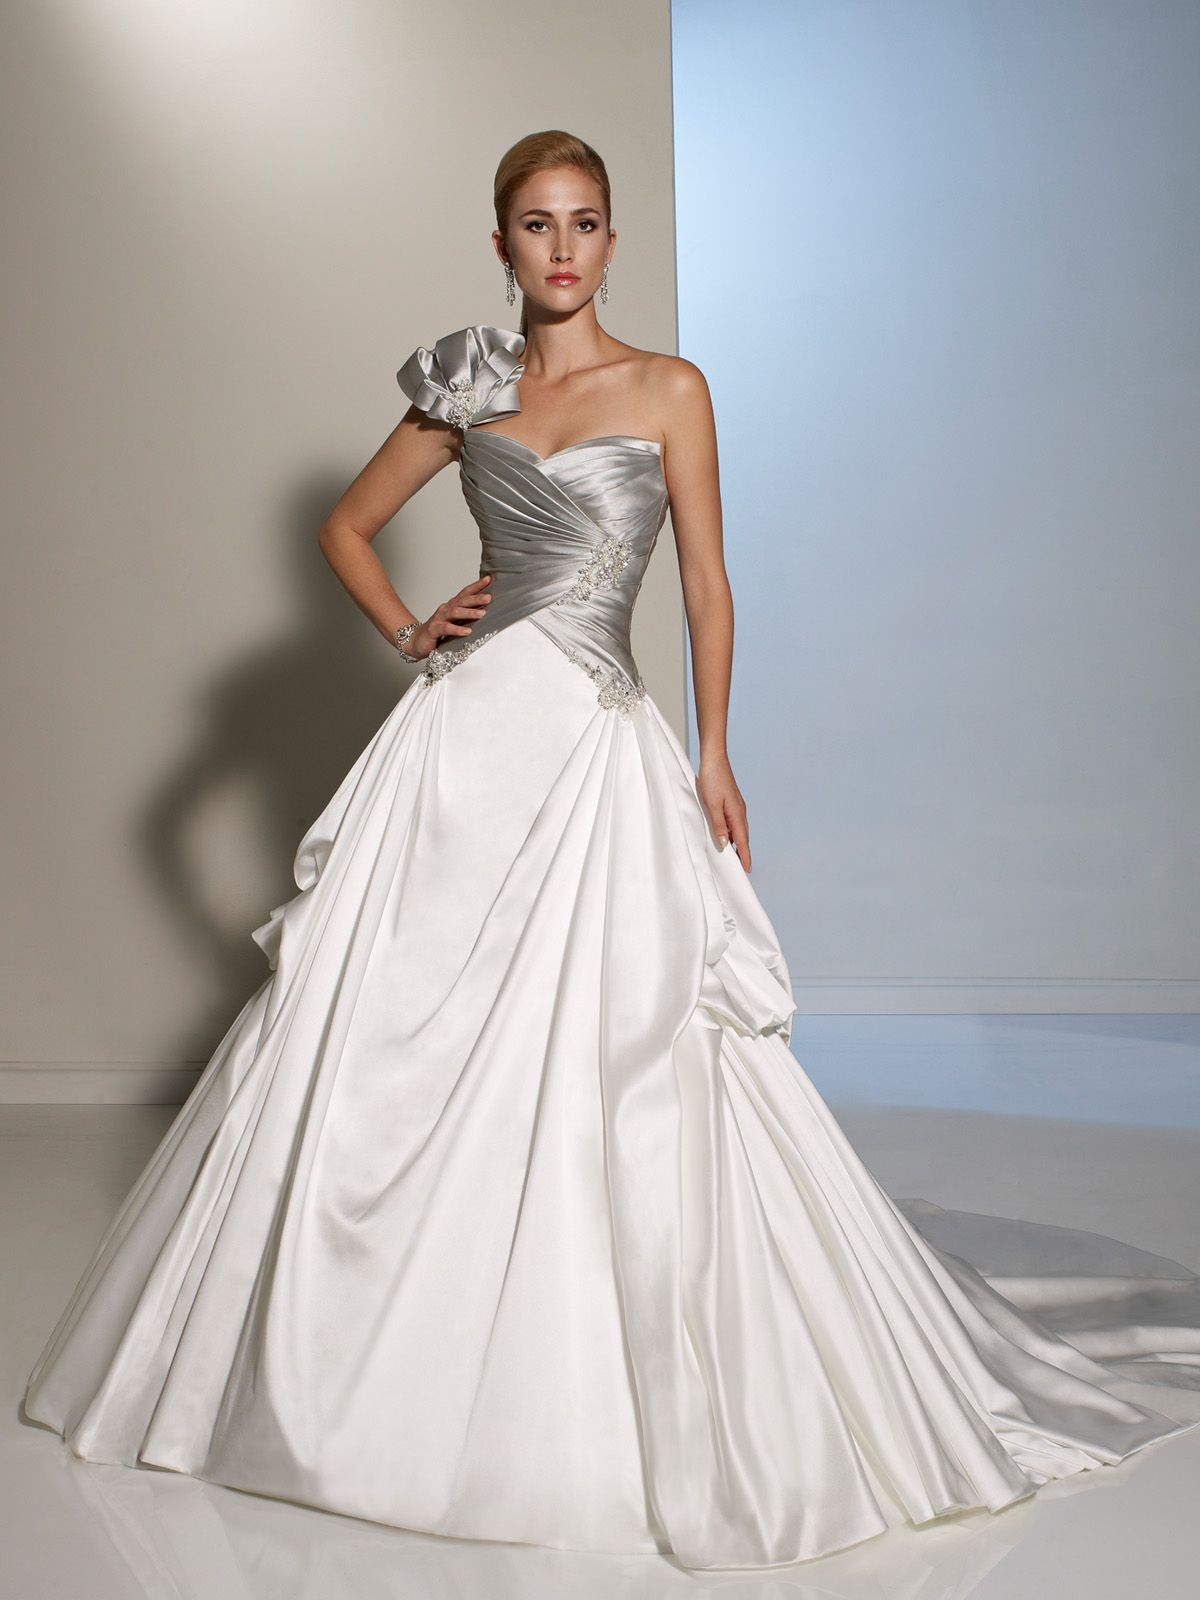 Best Silver And White Wedding Dresses Ideas - Styles & Ideas 2018 ...